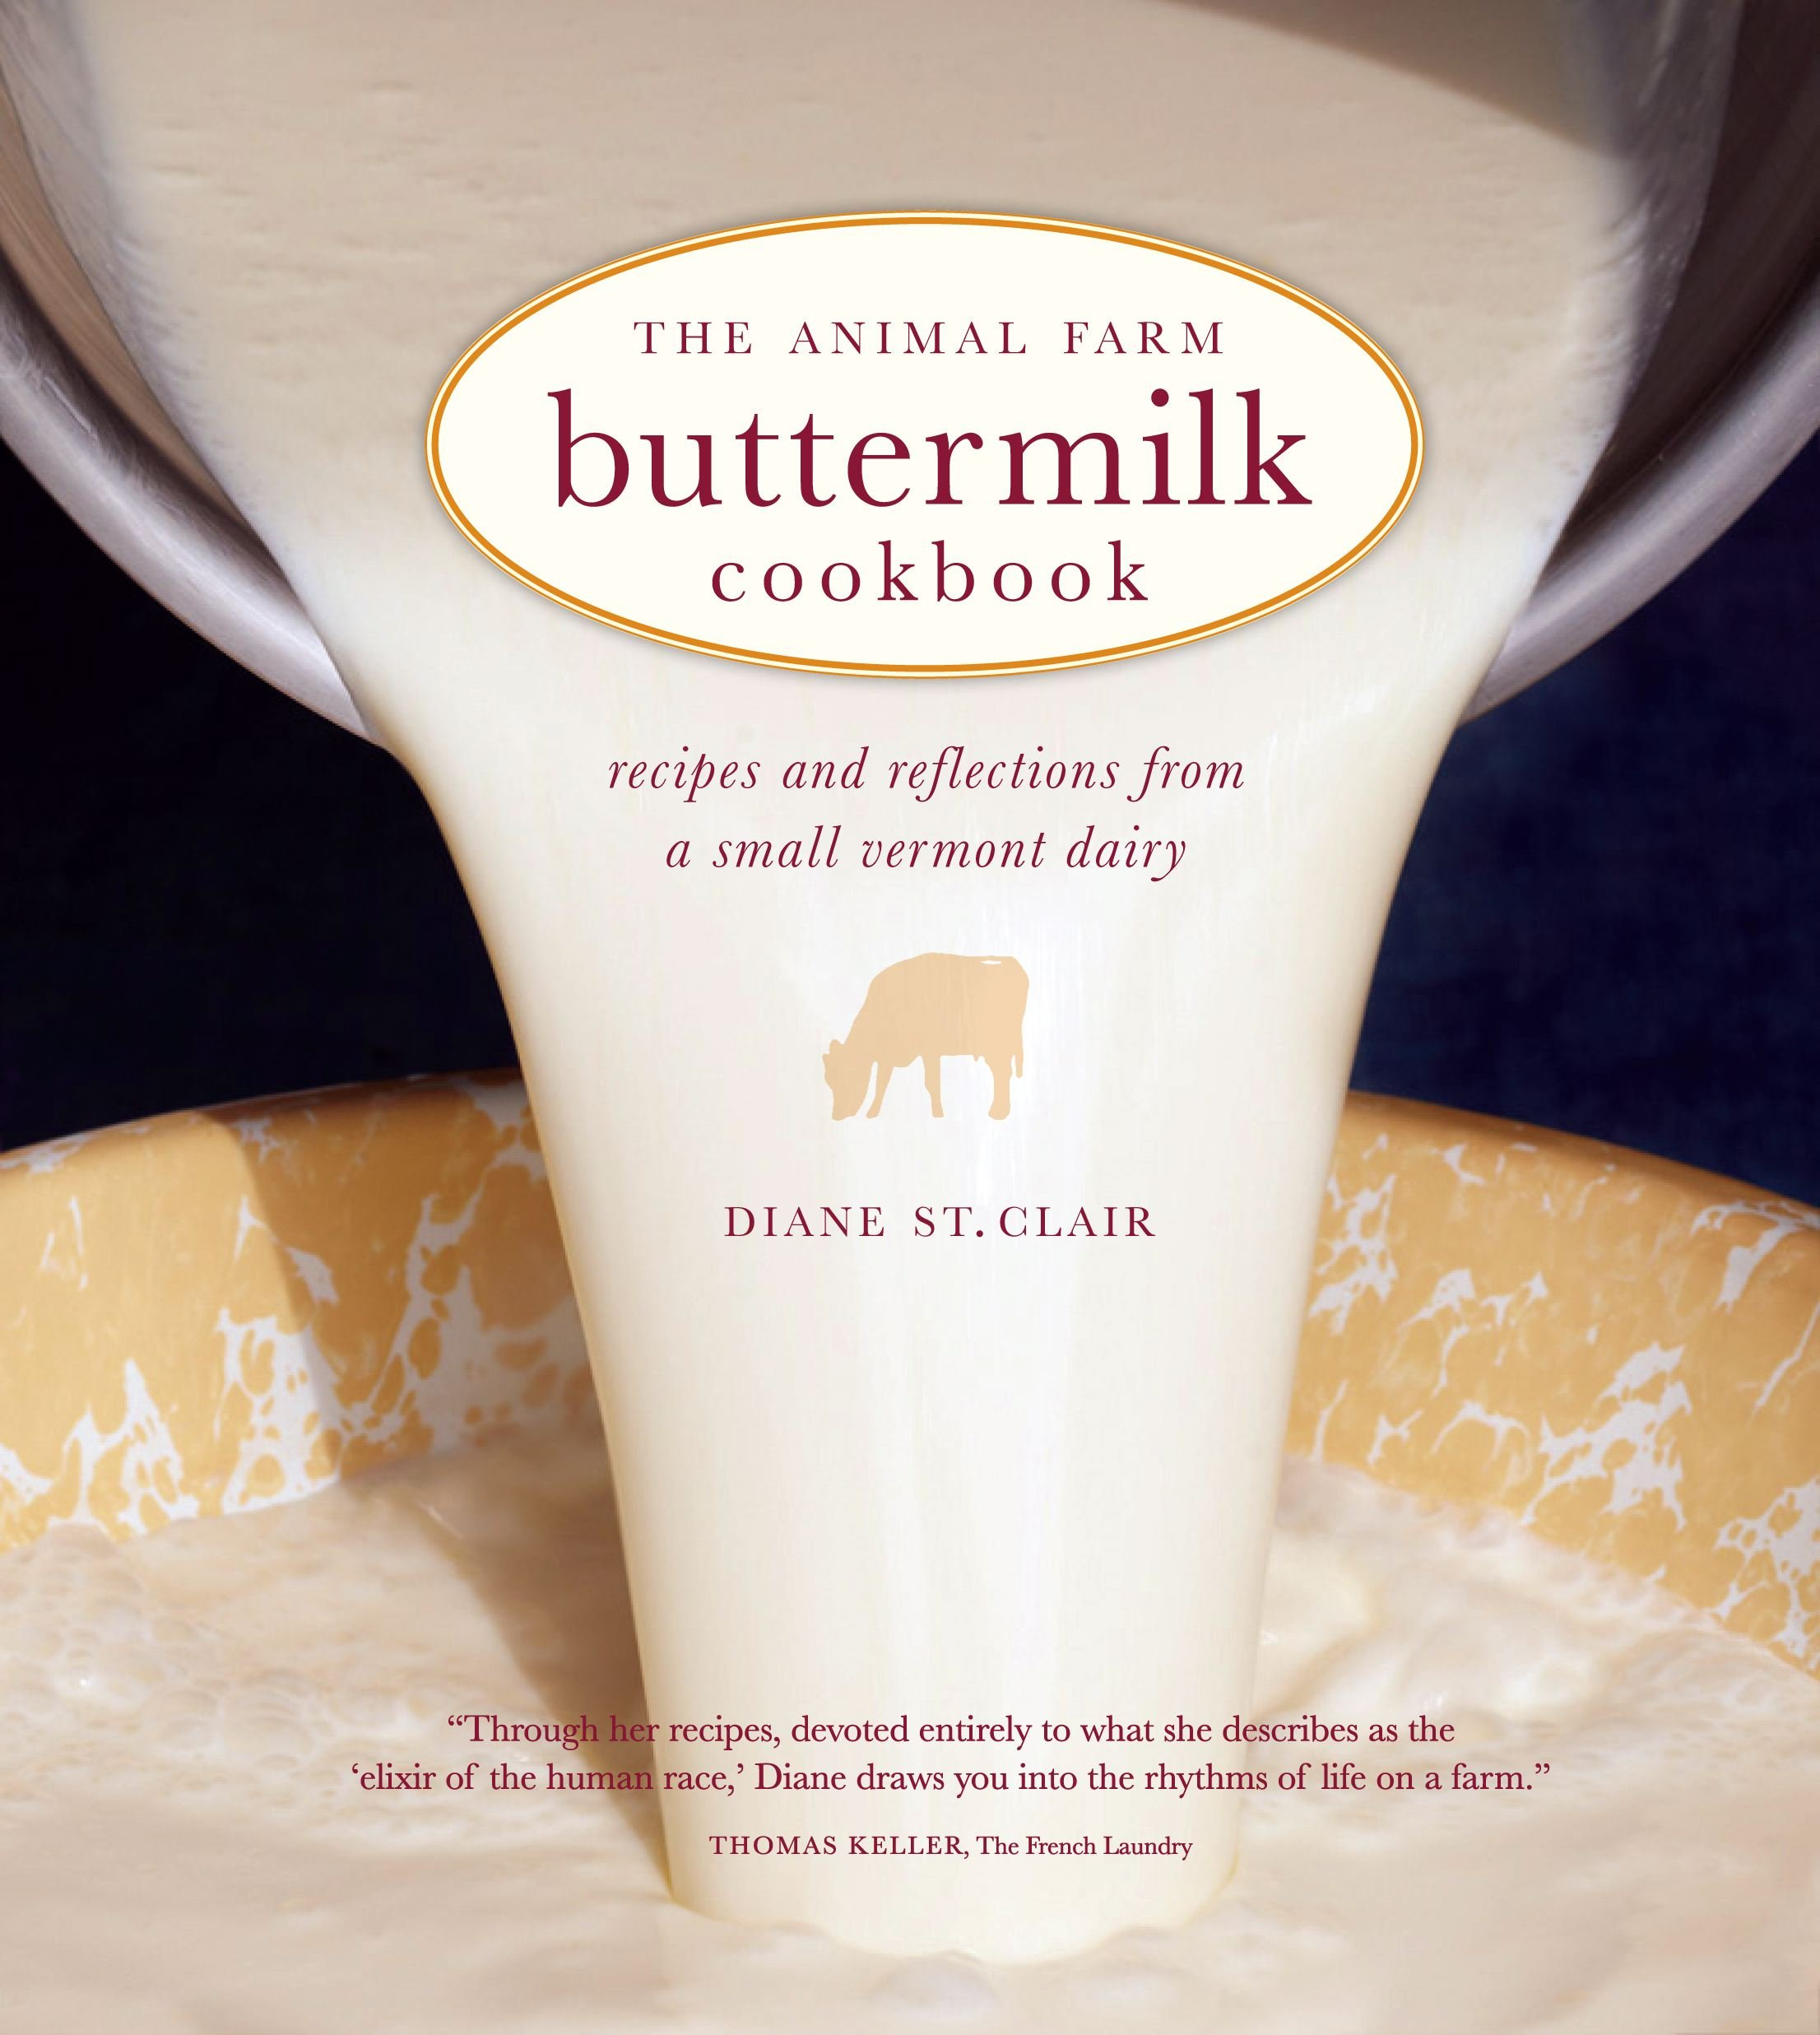 The Animal Farm Buttermilk Cookbook: Recipes and Reflections from a Small Vermont Dairy PDF